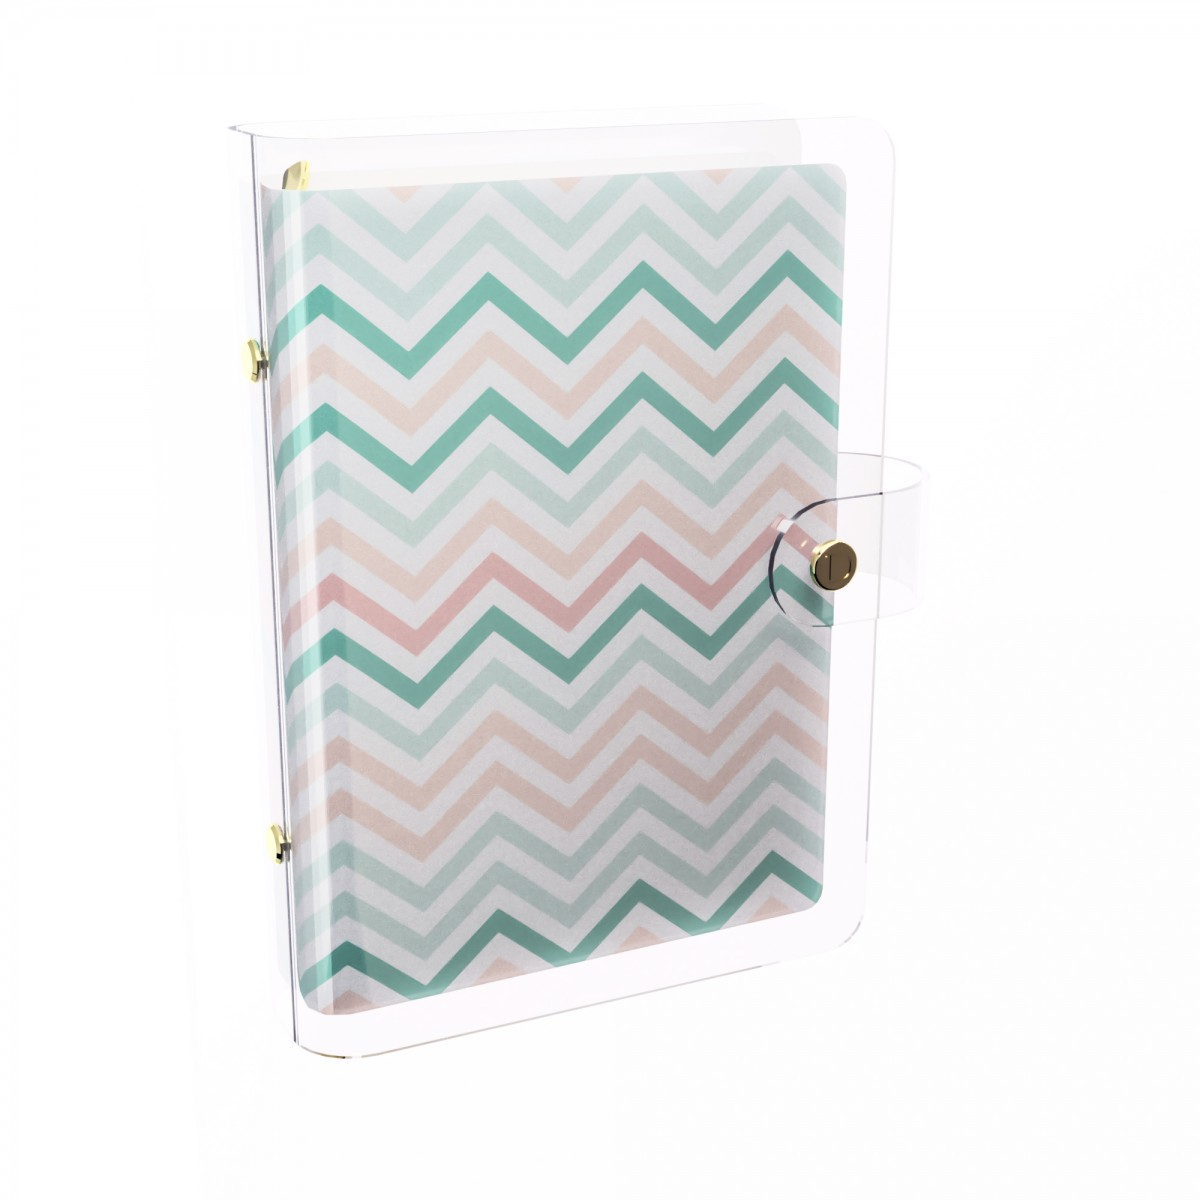 DISCAGENDA CLARITY CLEAR PVC PLANNER COVER - CHEVRON, RINGBOUND, PERSONAL SIZE